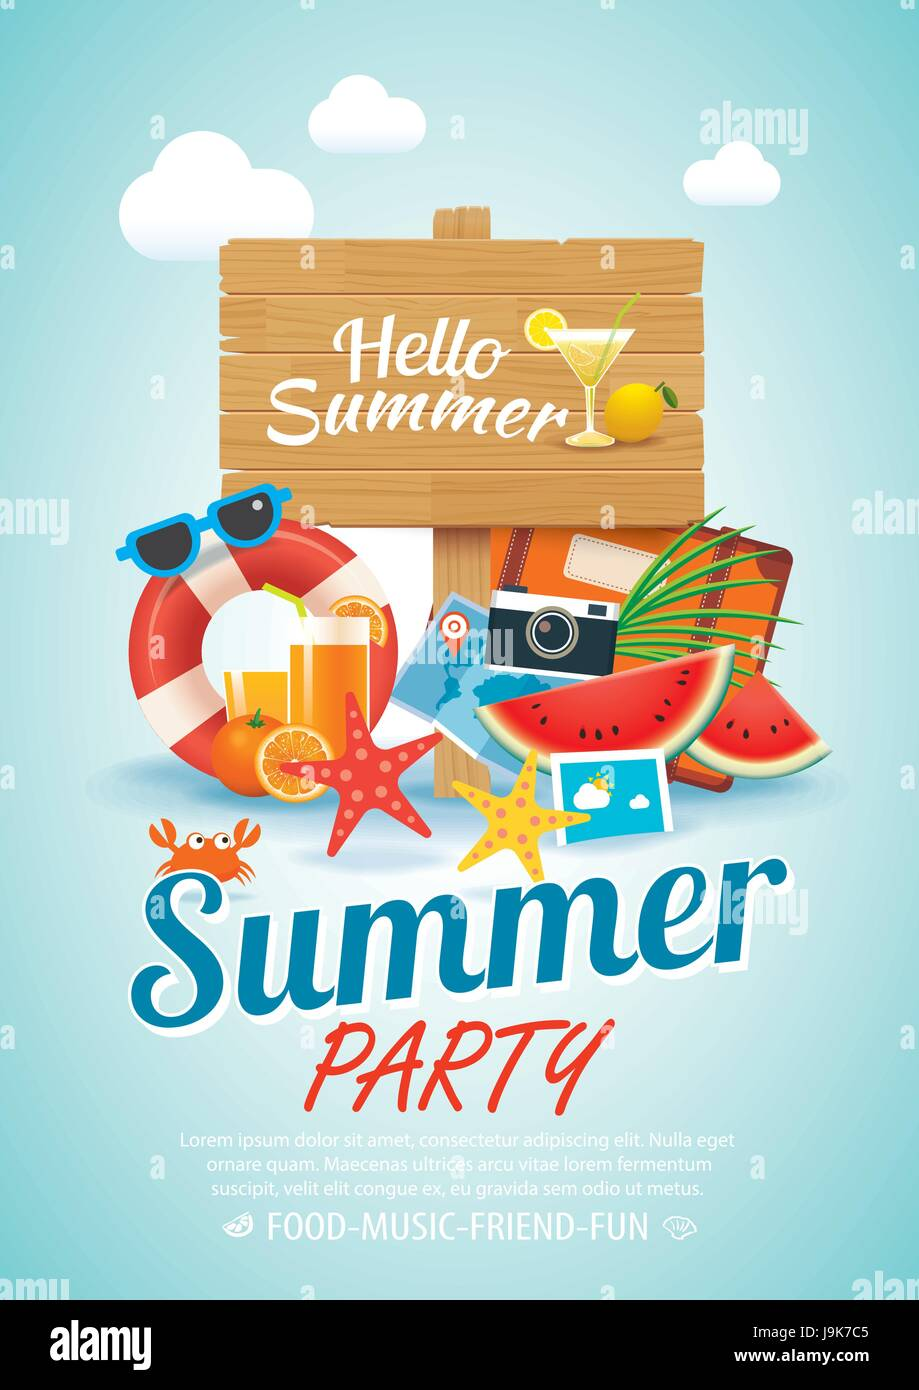 summer beach party invitation poster background elements and wooden ...